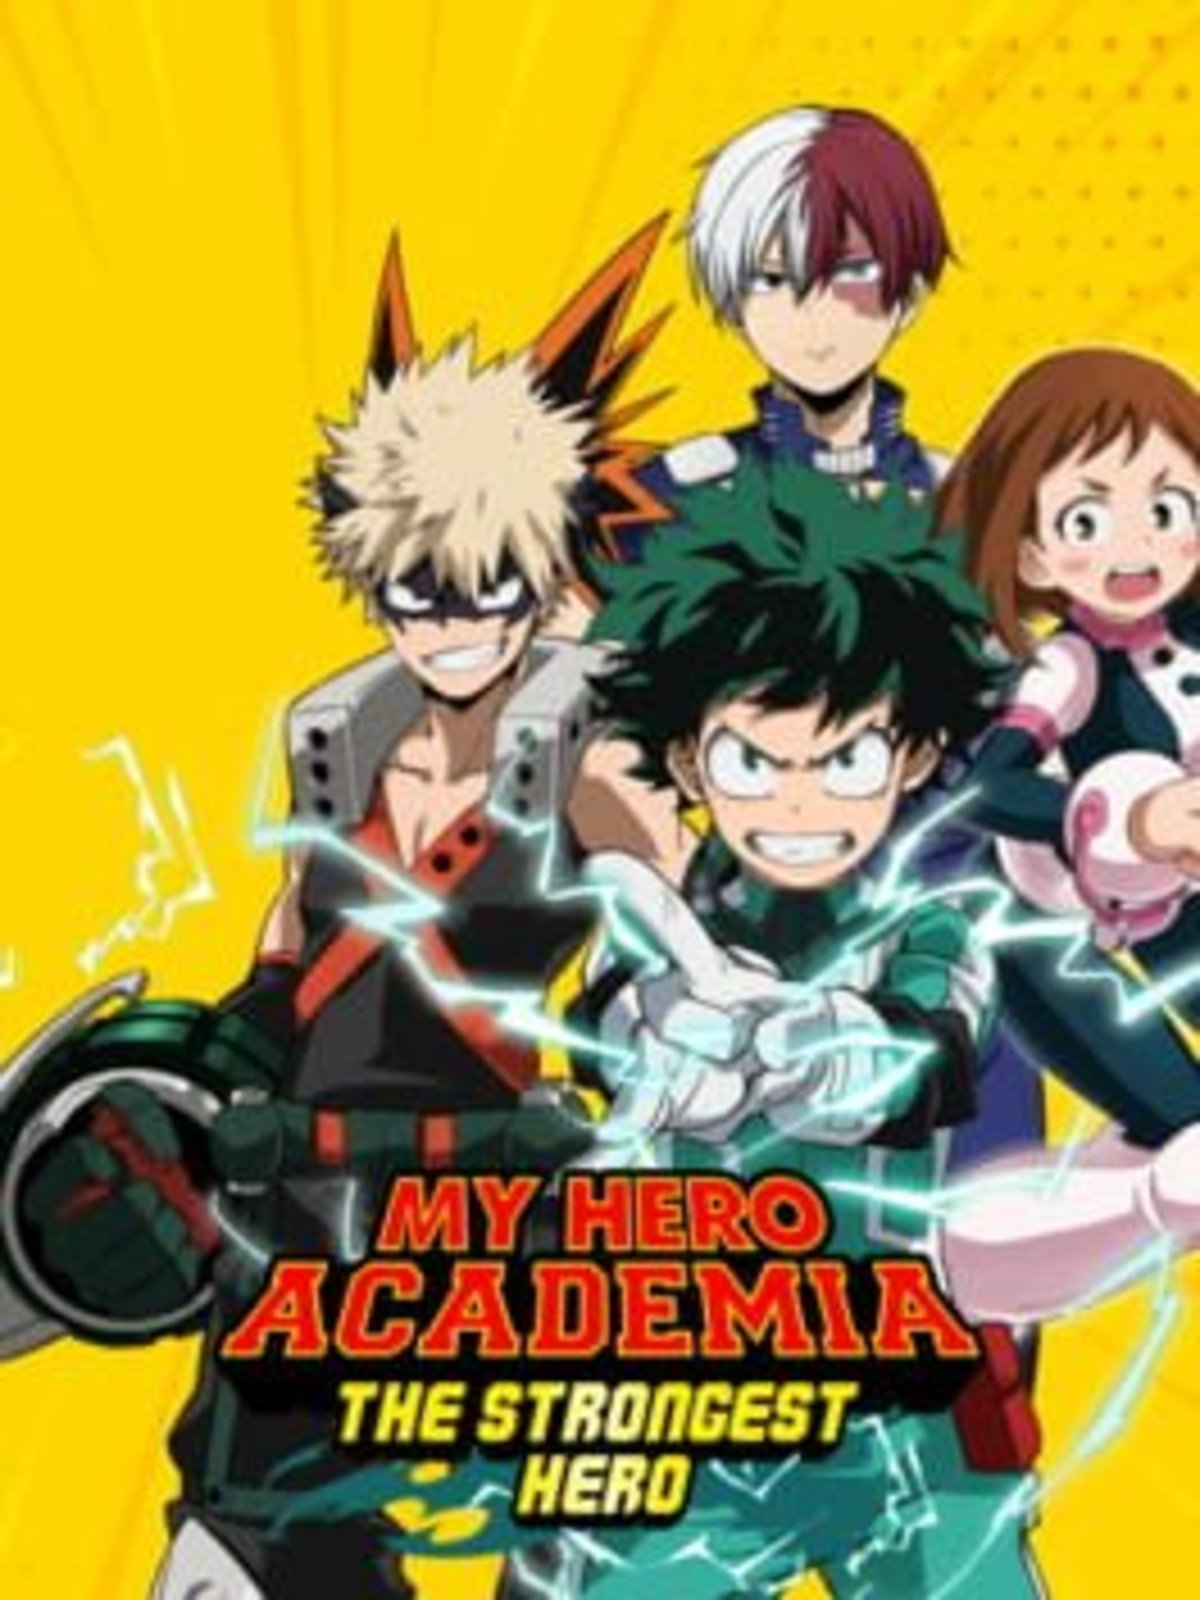 1632857953 684 Complete guide of My Hero Academia Strongest Hero what you